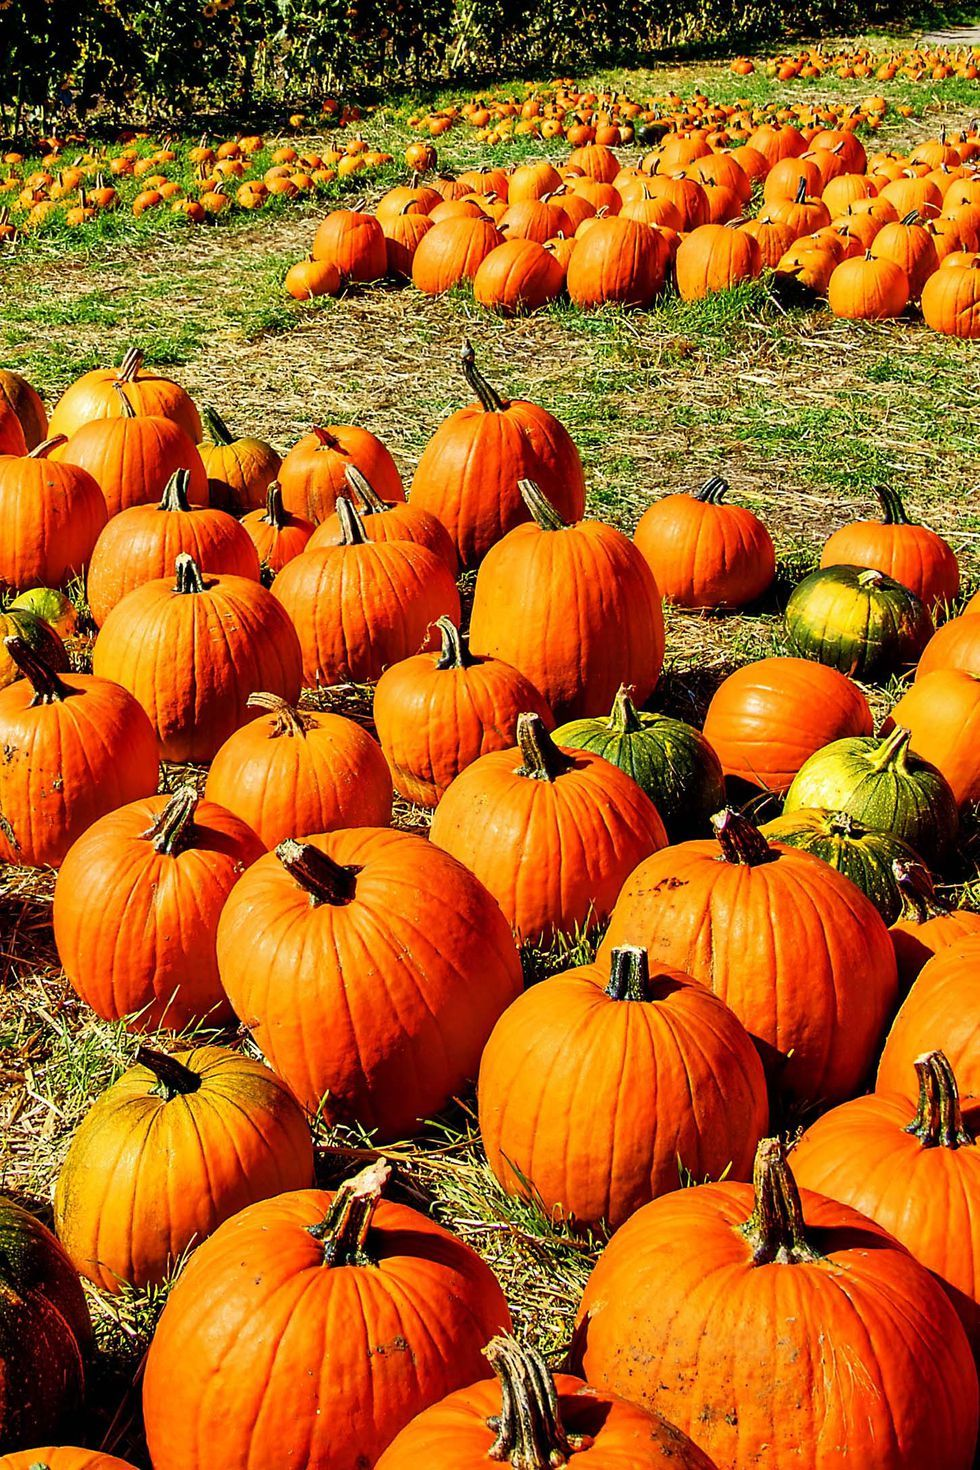 We Found The Best Pumpkin Farms To Visit This Fall Pumpkin Farm Best Pumpkin Patches Pumpkin